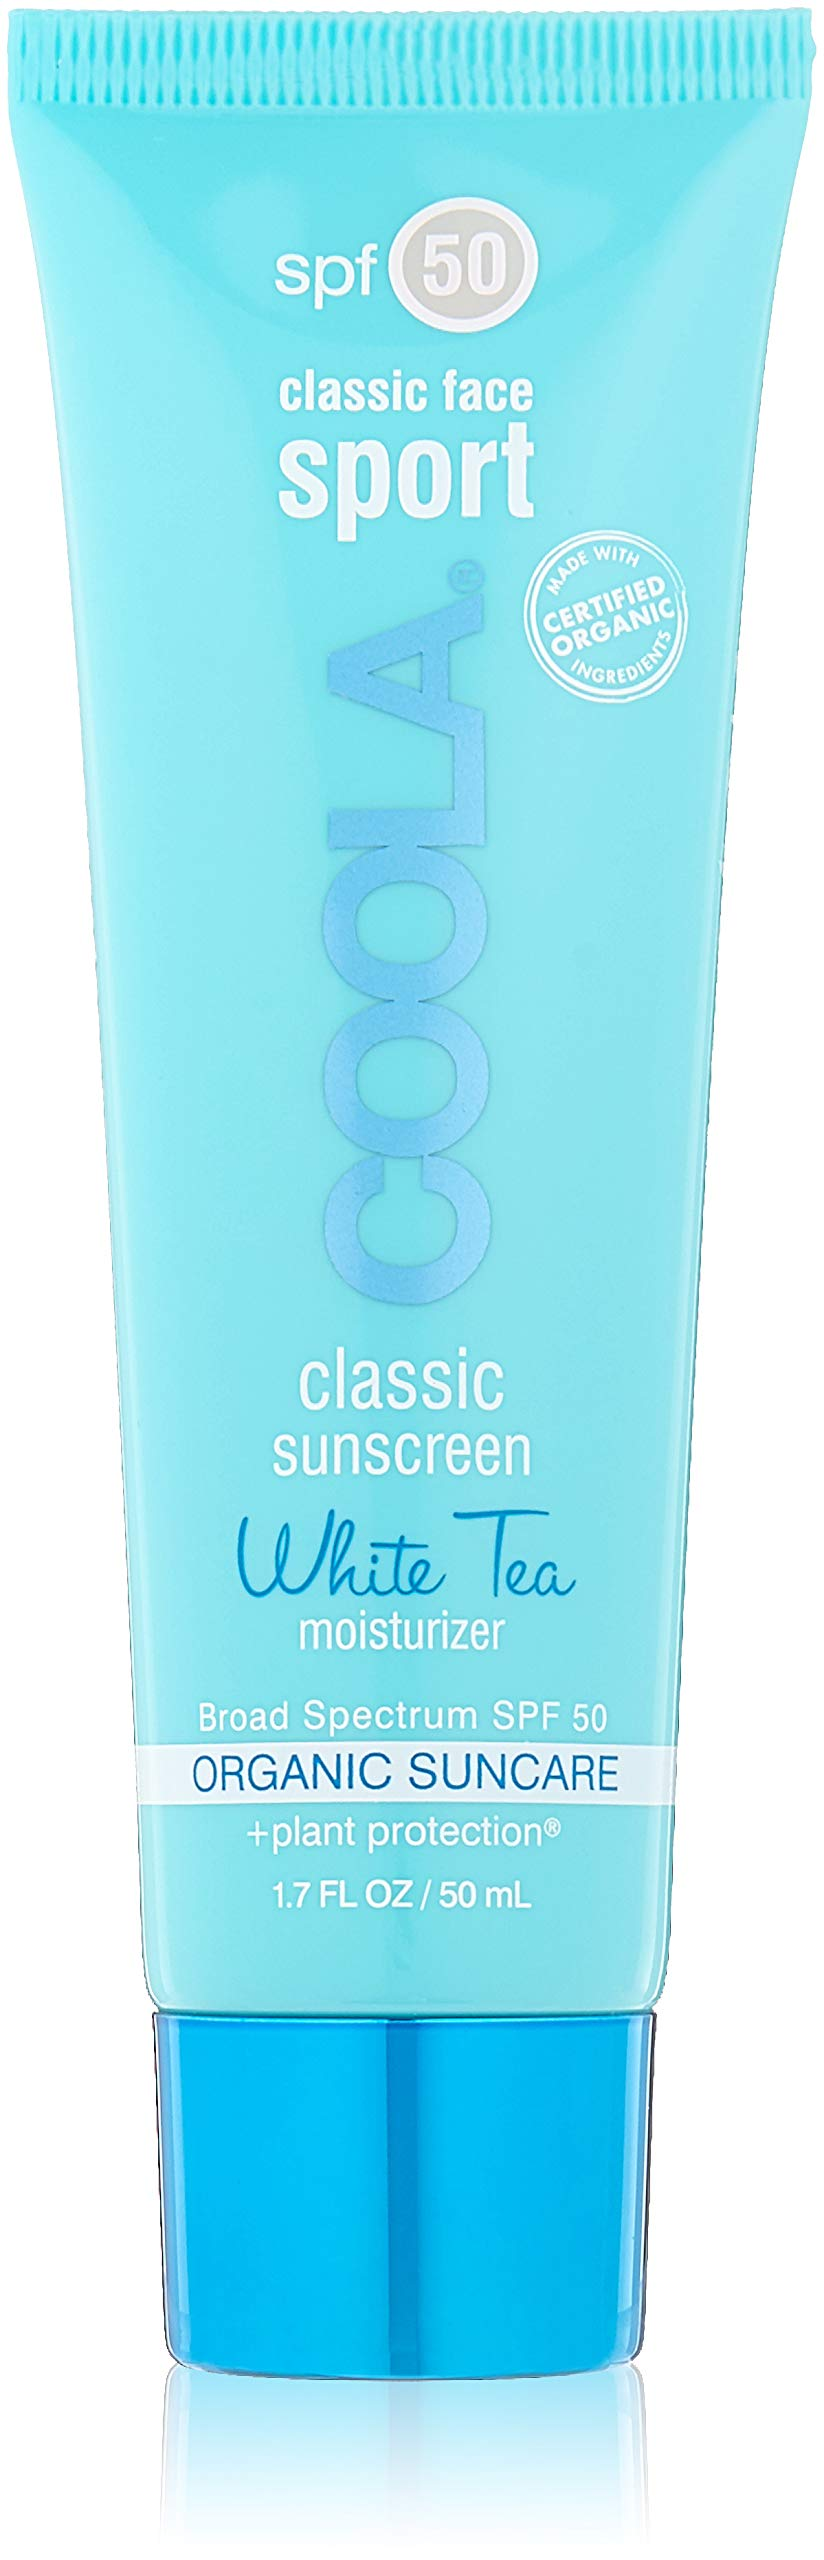 COOLA Suncare Classic Sport Face SPF 50 Sunscreen, White Tea, 1.7 Fl Oz by Coola Suncare